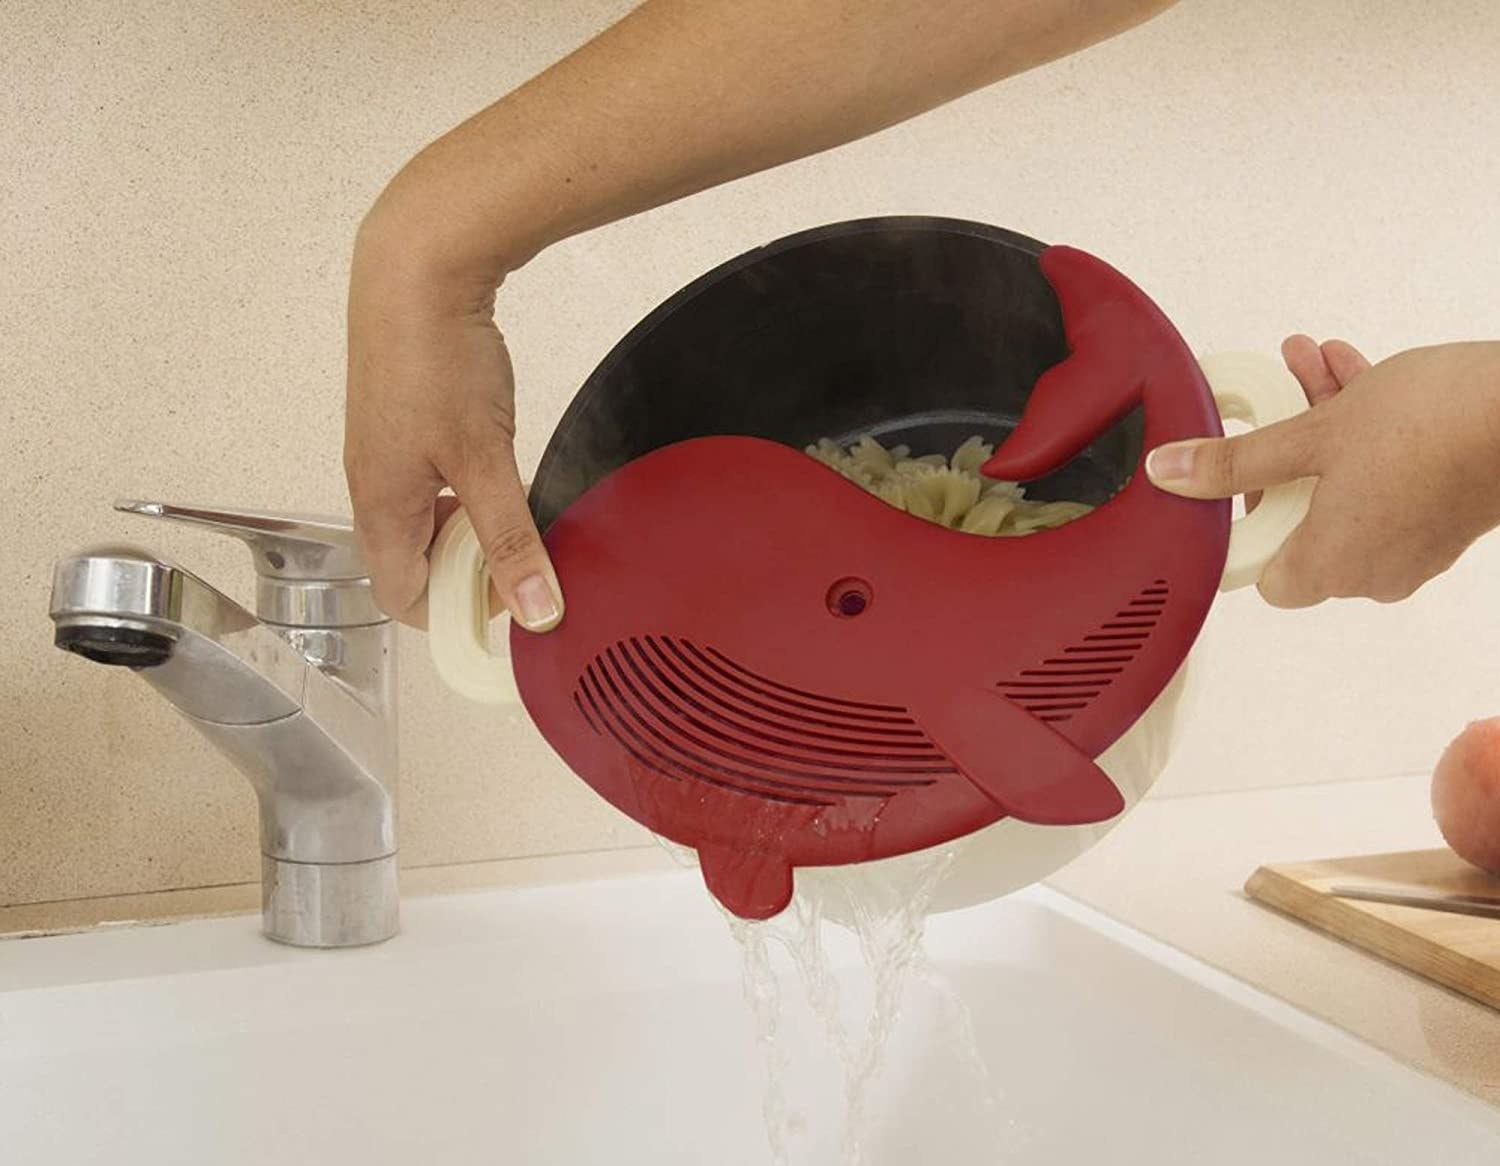 model holding a pot filled with pasta with a red whale-shaped strainer on top, getting the water out of the pot